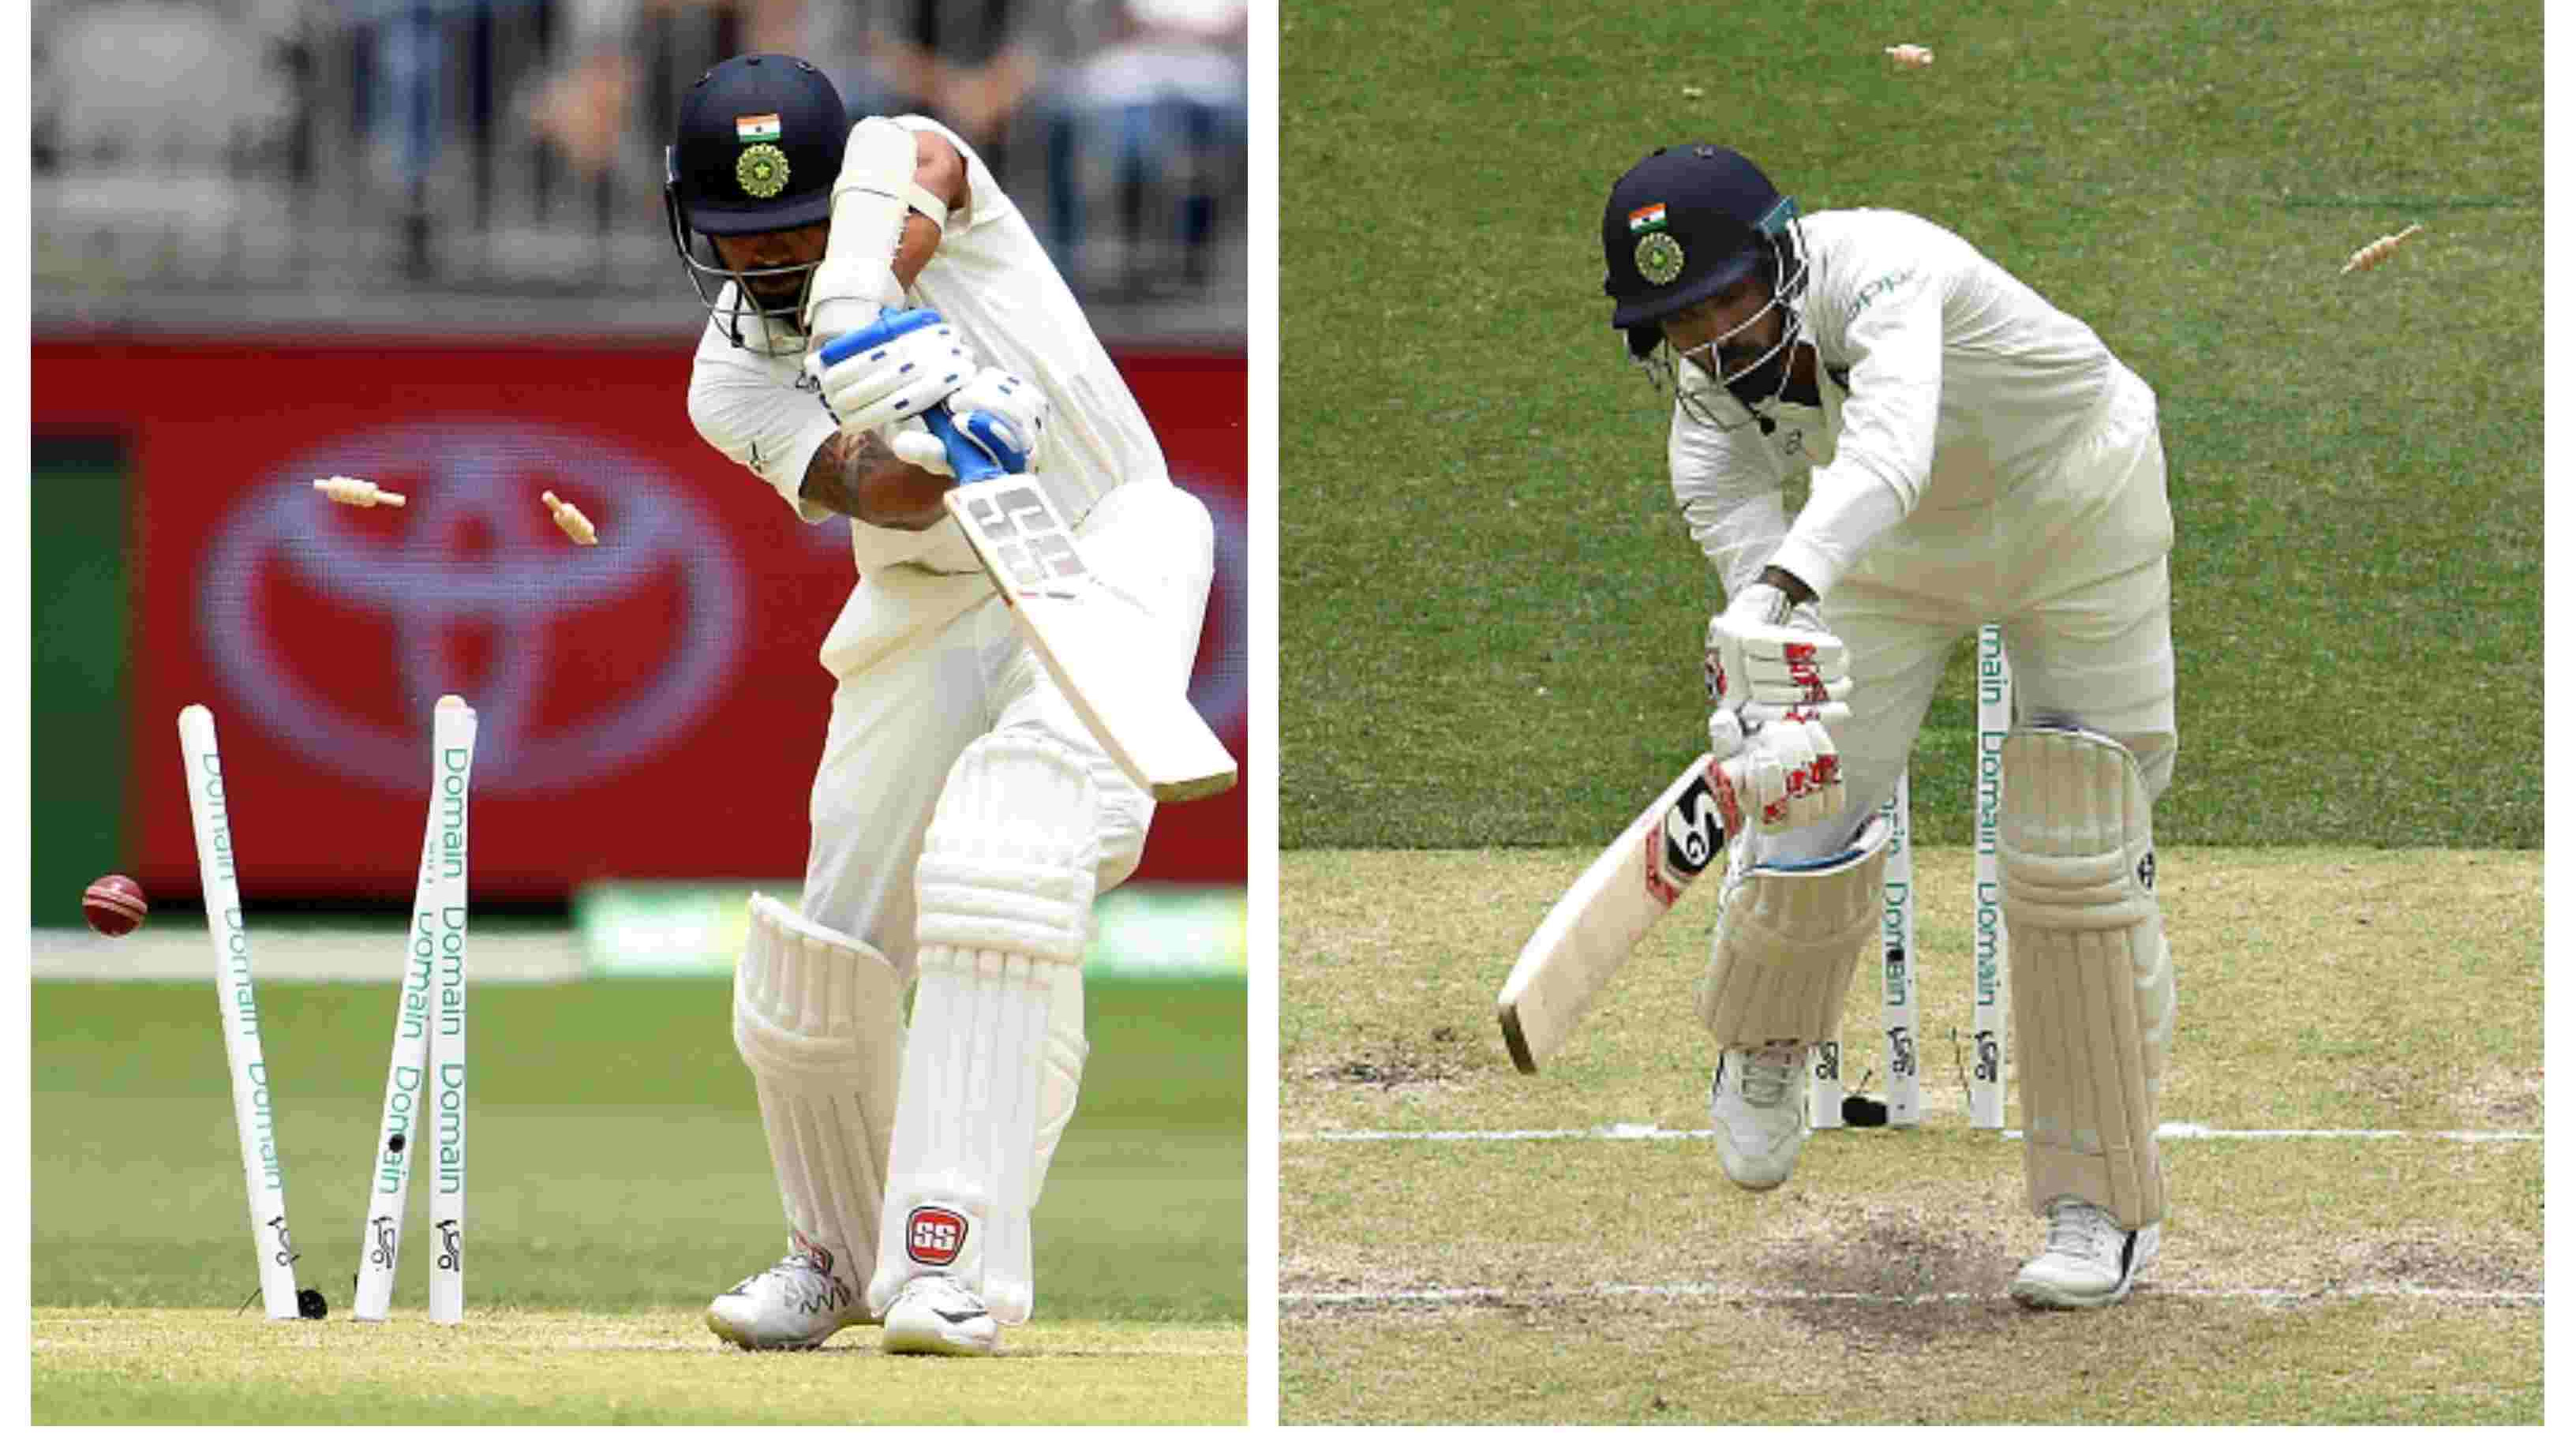 AUS v IND 2018-19: Indian fans brutally trolled Vijay and Rahul for their miserable performance in Perth Test